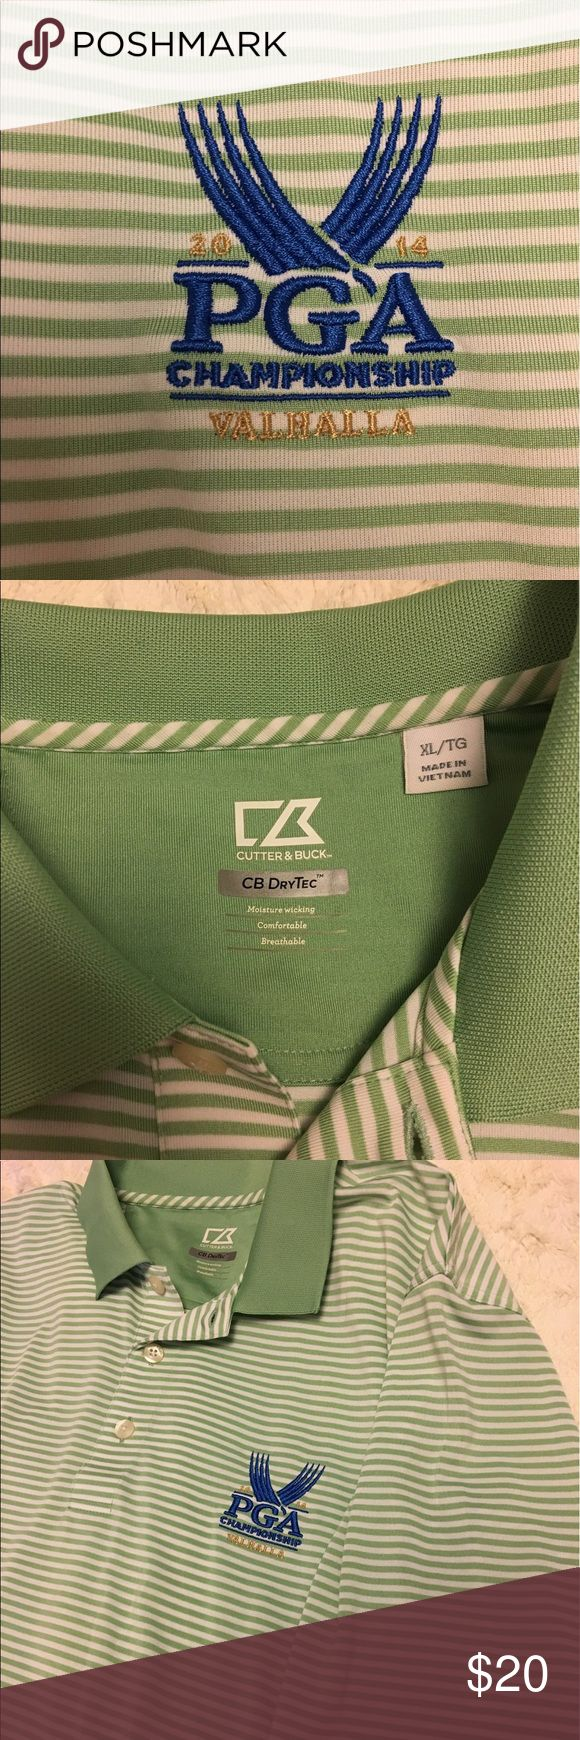 PGA golf shirt 2014 PGA tournament Valhalla golf shirt. Green and white stripes. NEVER WORN. Make an offer of bundle for a discount! I will model upon request if the item fits me. MOVING SALE! Everything must go! ☺ Shirts Polos